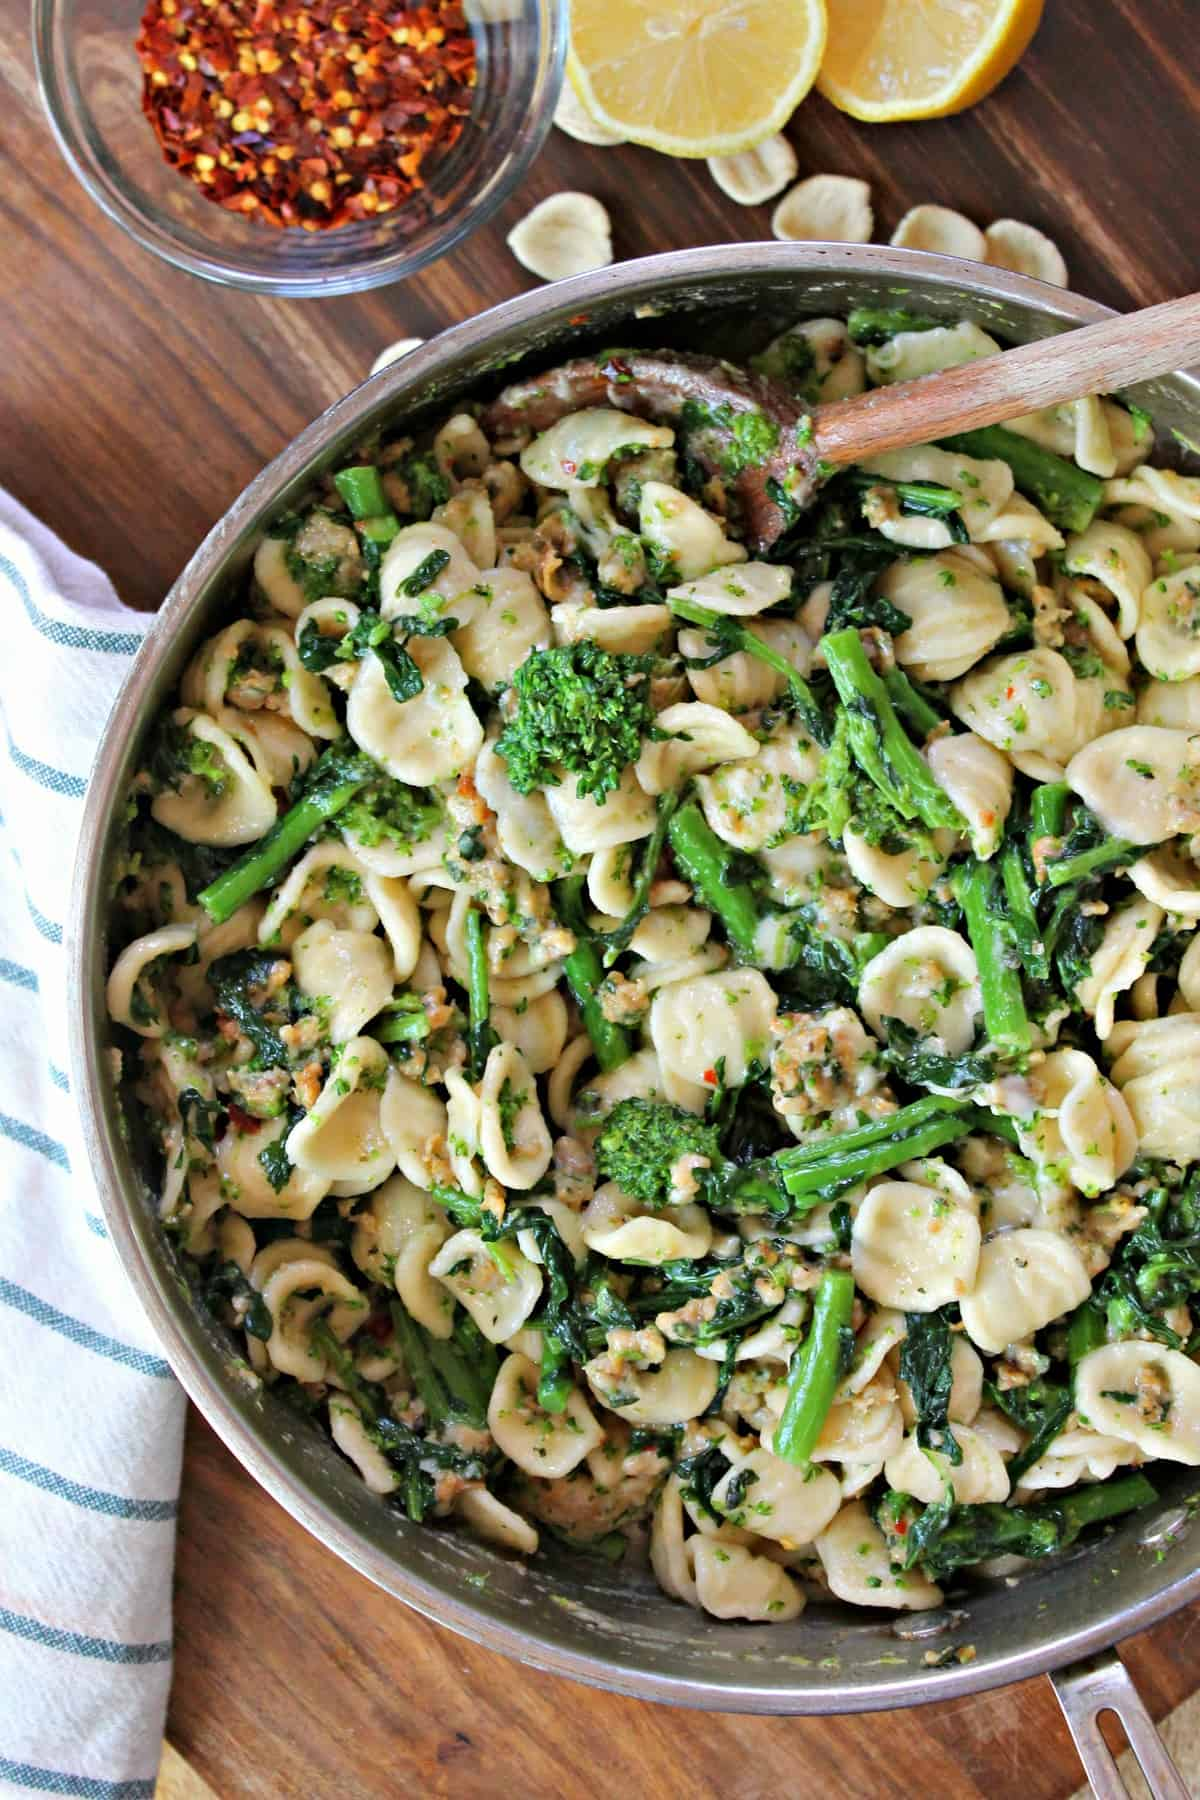 This incredible Orecchiette Pasta dish is bursting with flavor from hearty sausage and perfectly seasoned broccoli rabe